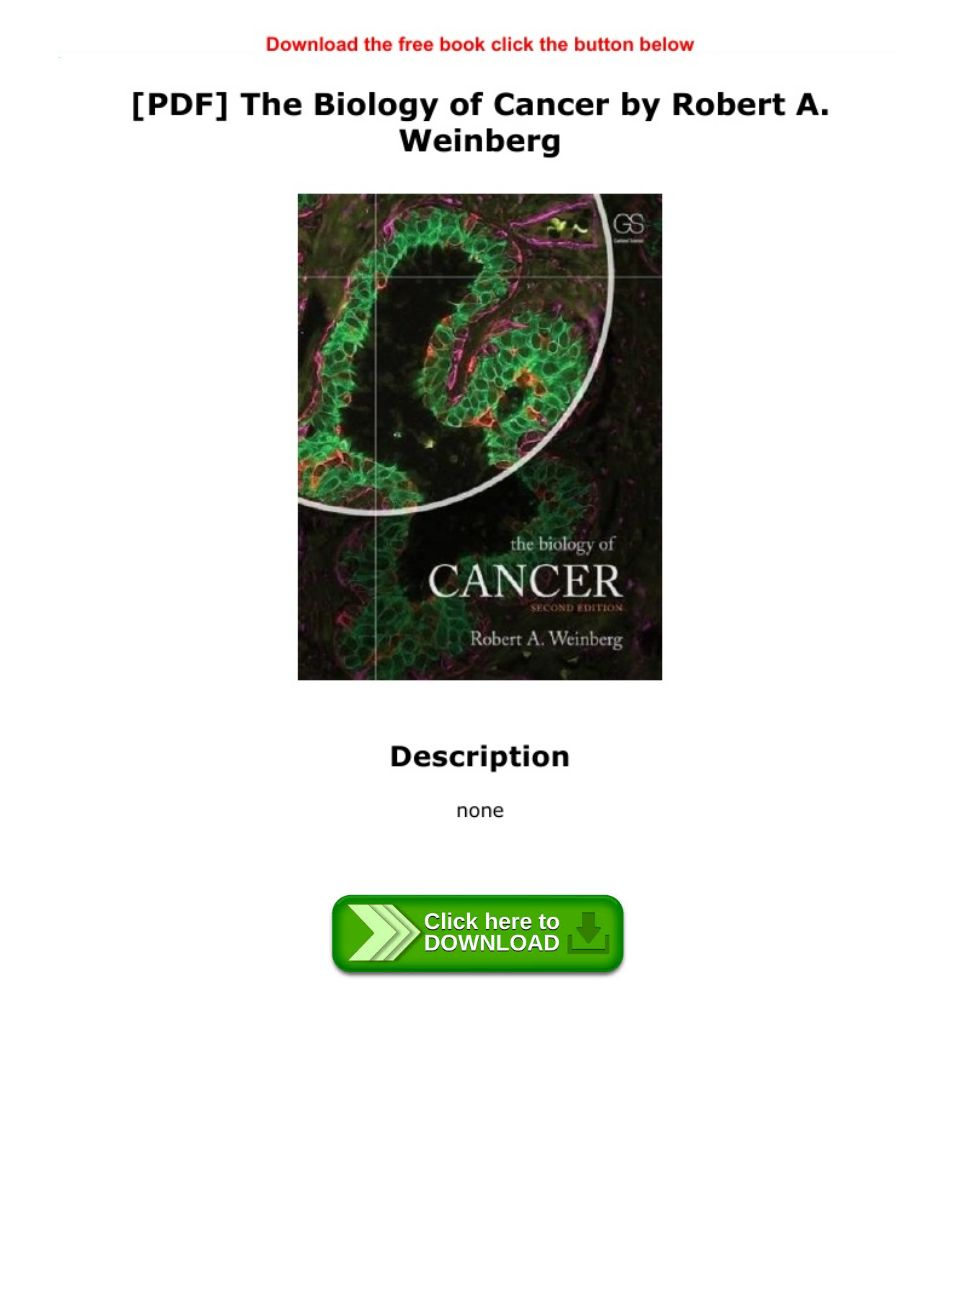 The Biology Of Cancer Weinberg Pdf